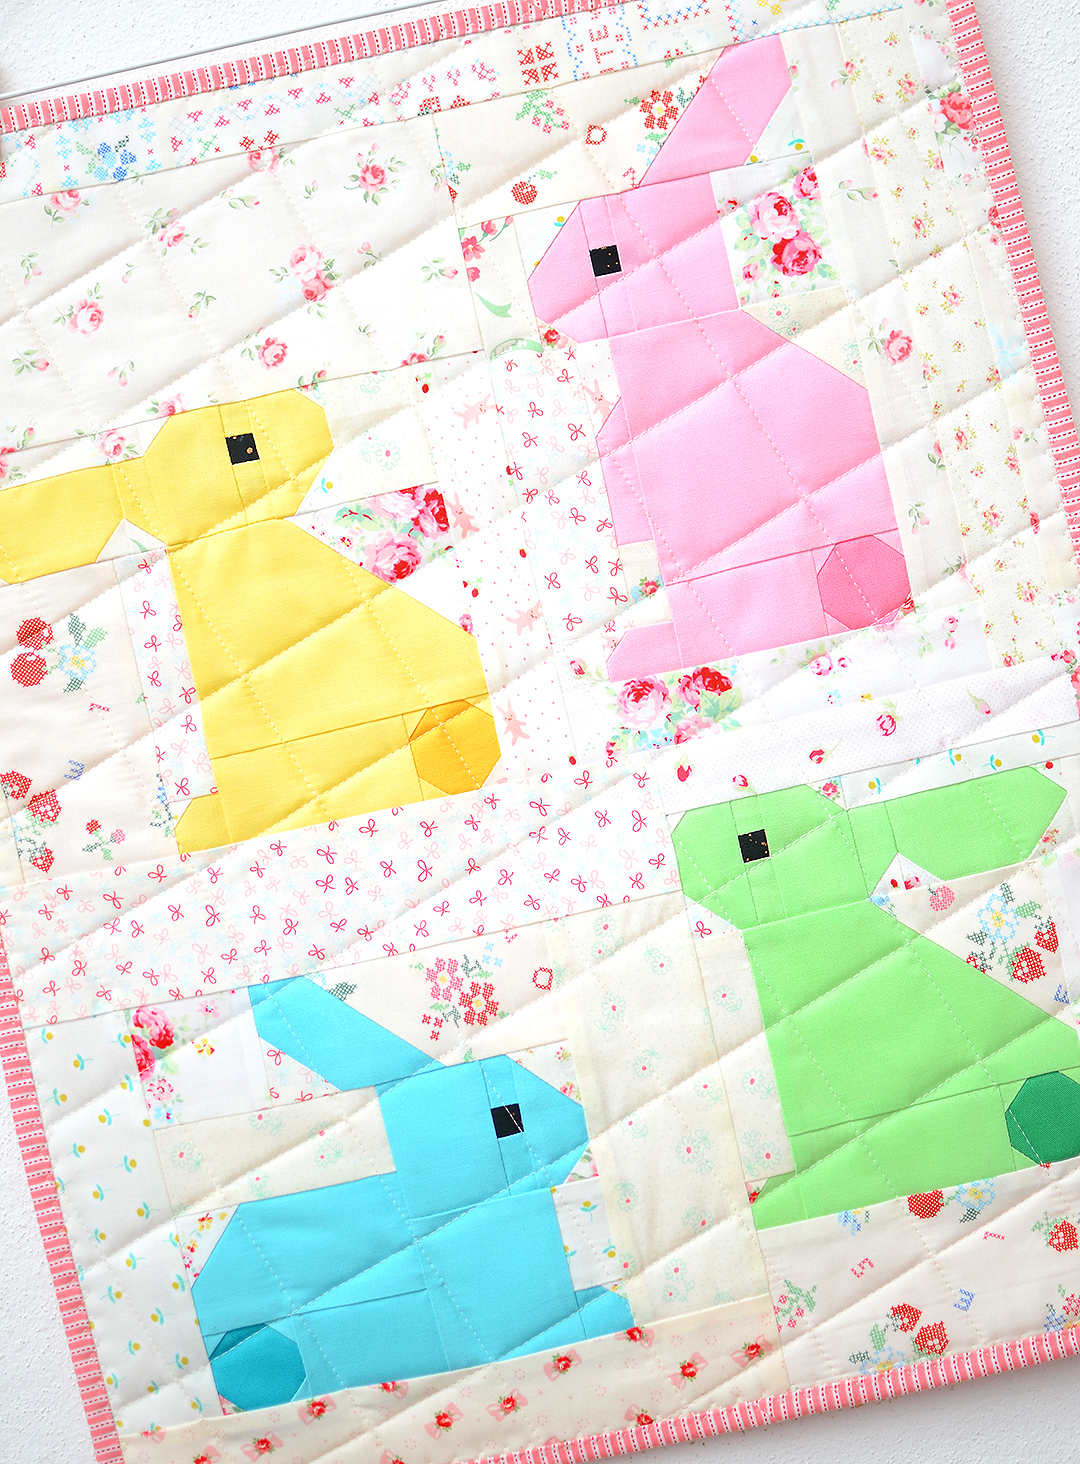 Bunny Easter quilt pattern